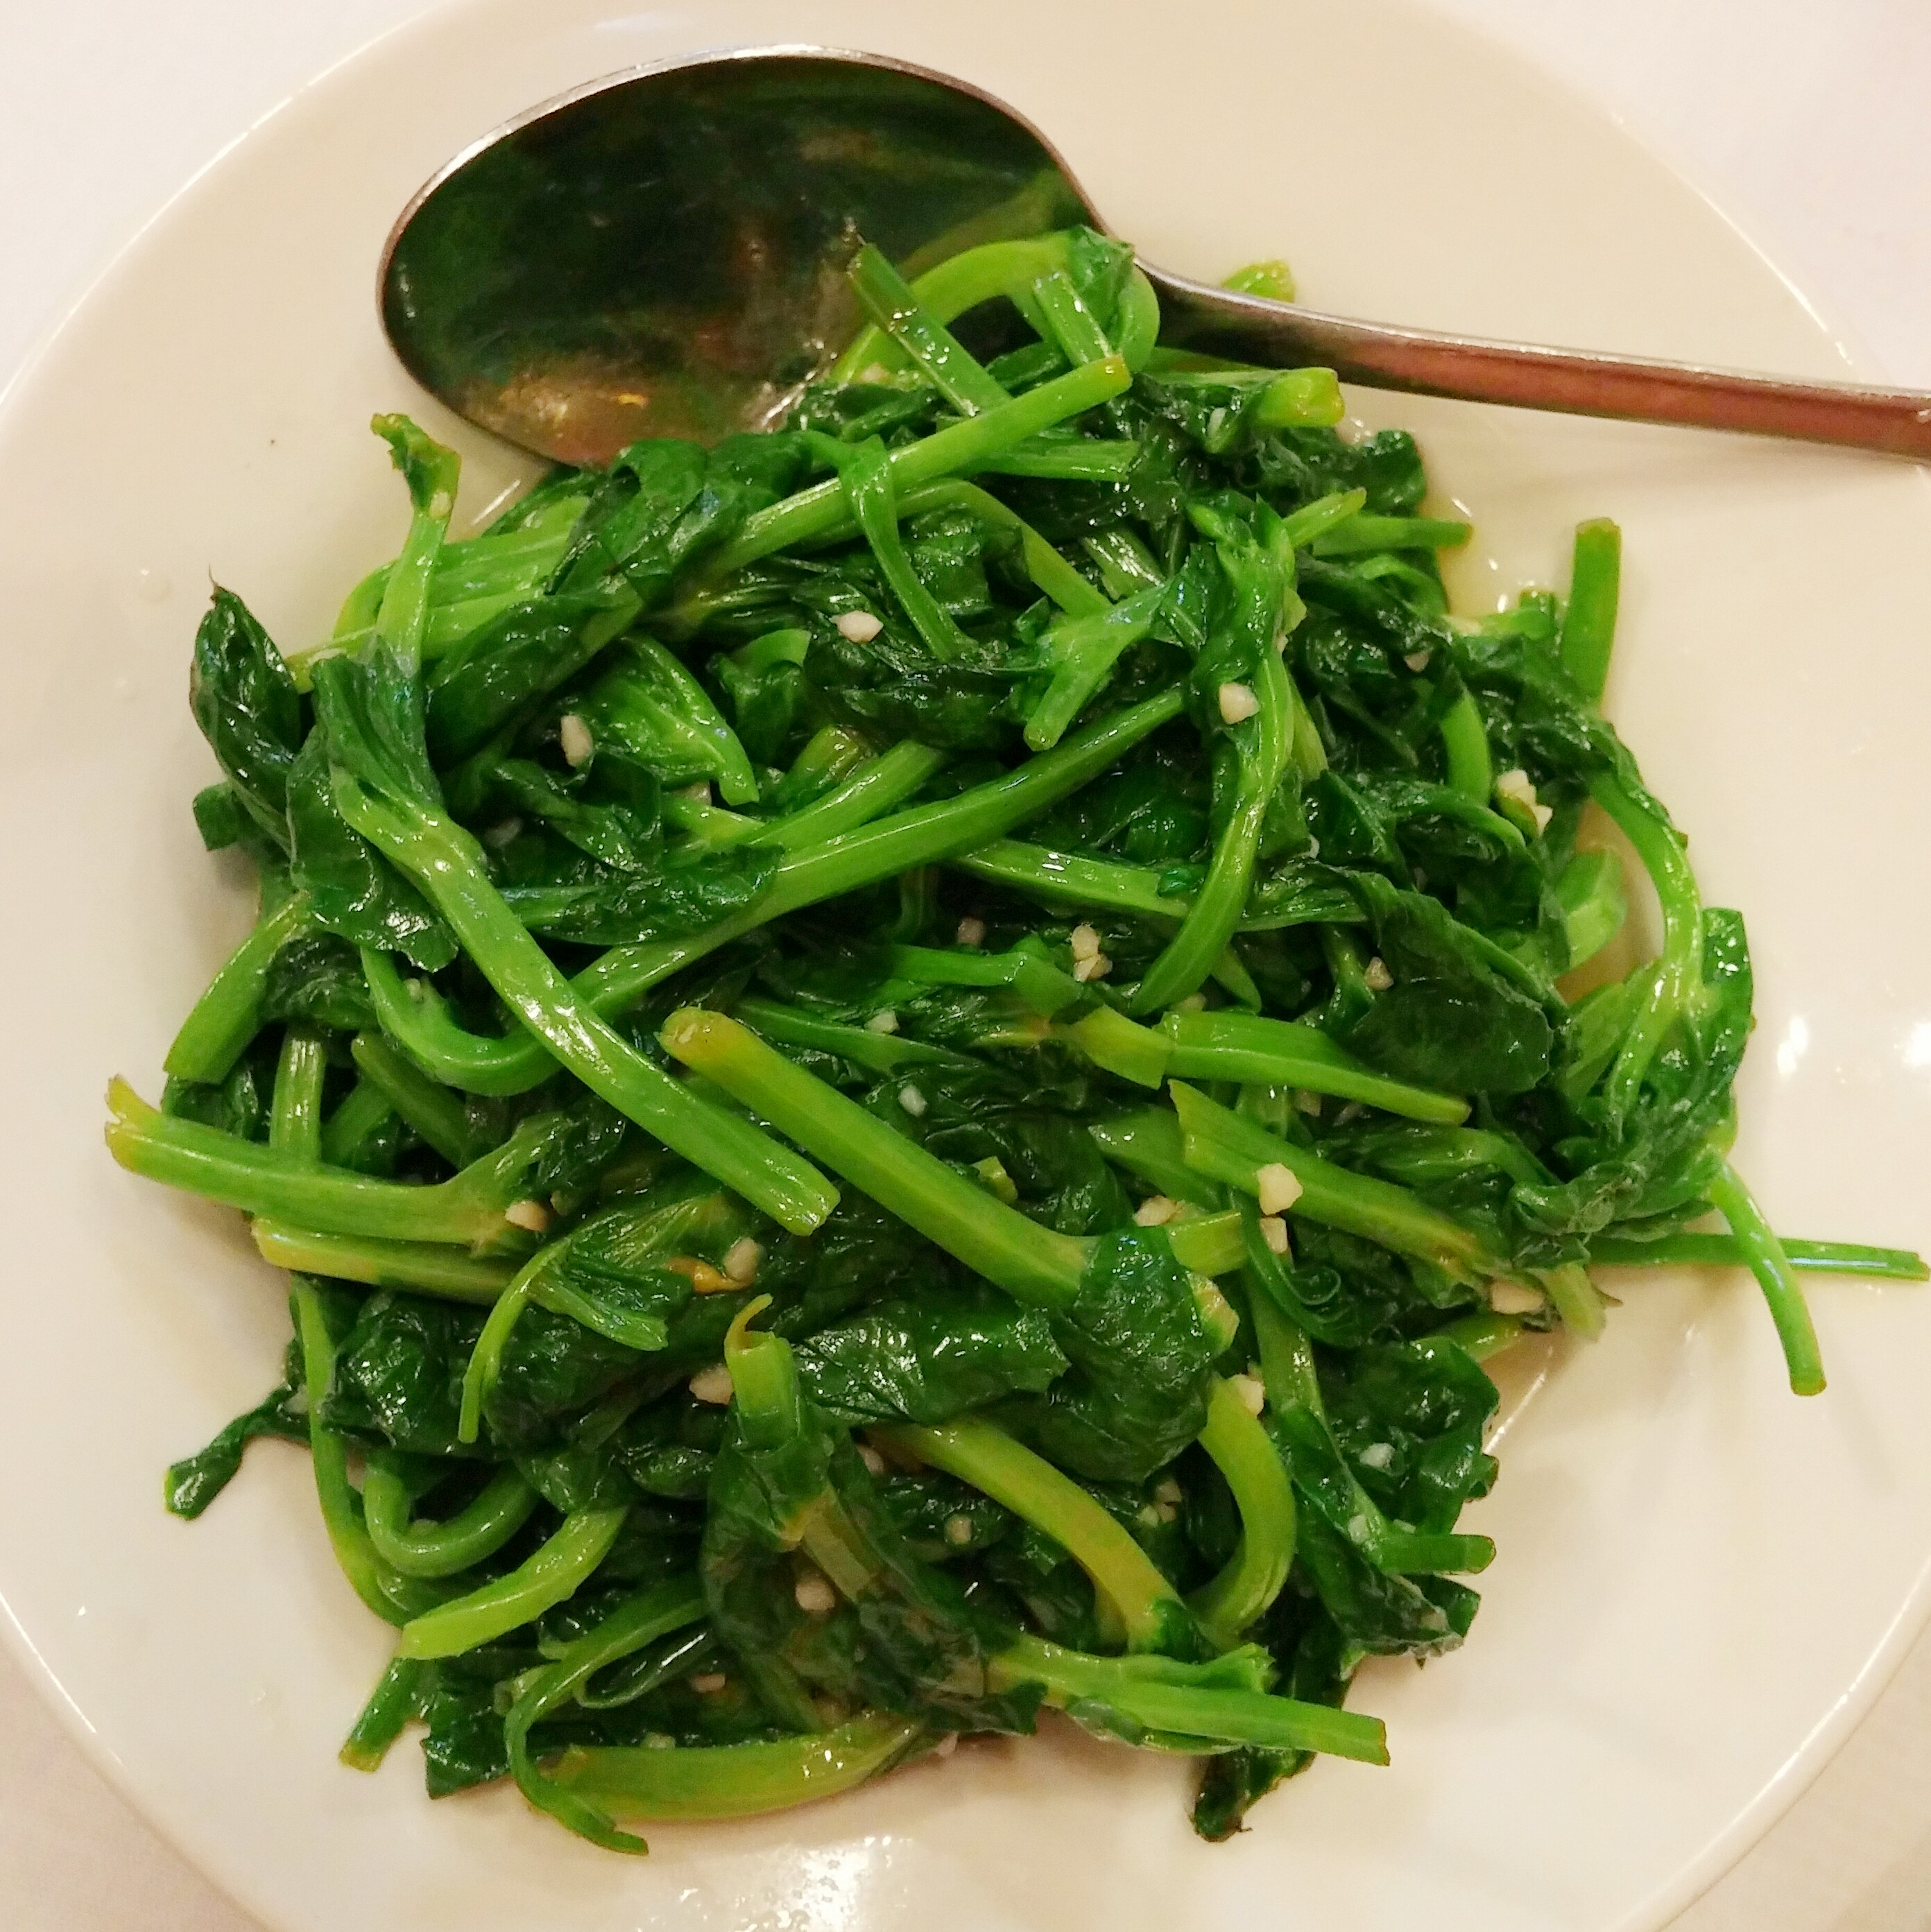 That expensive vegetable dish you had at dim sum is called dao mew (garlic pea shoots)